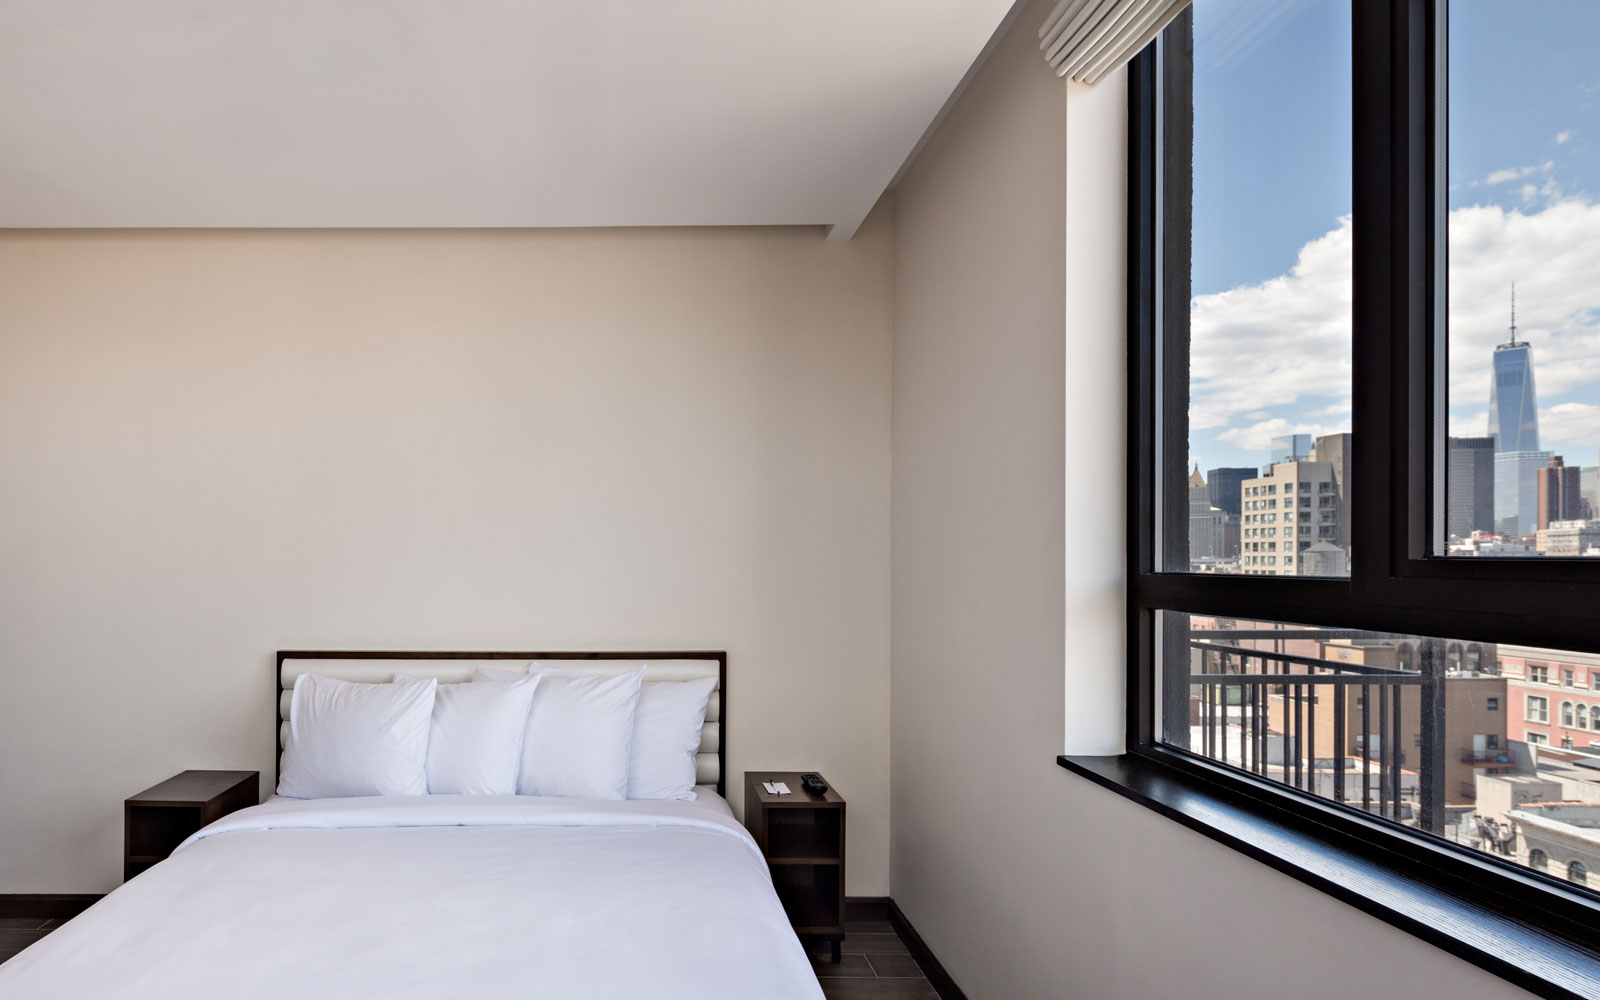 Orchard_St_Hotel_Room